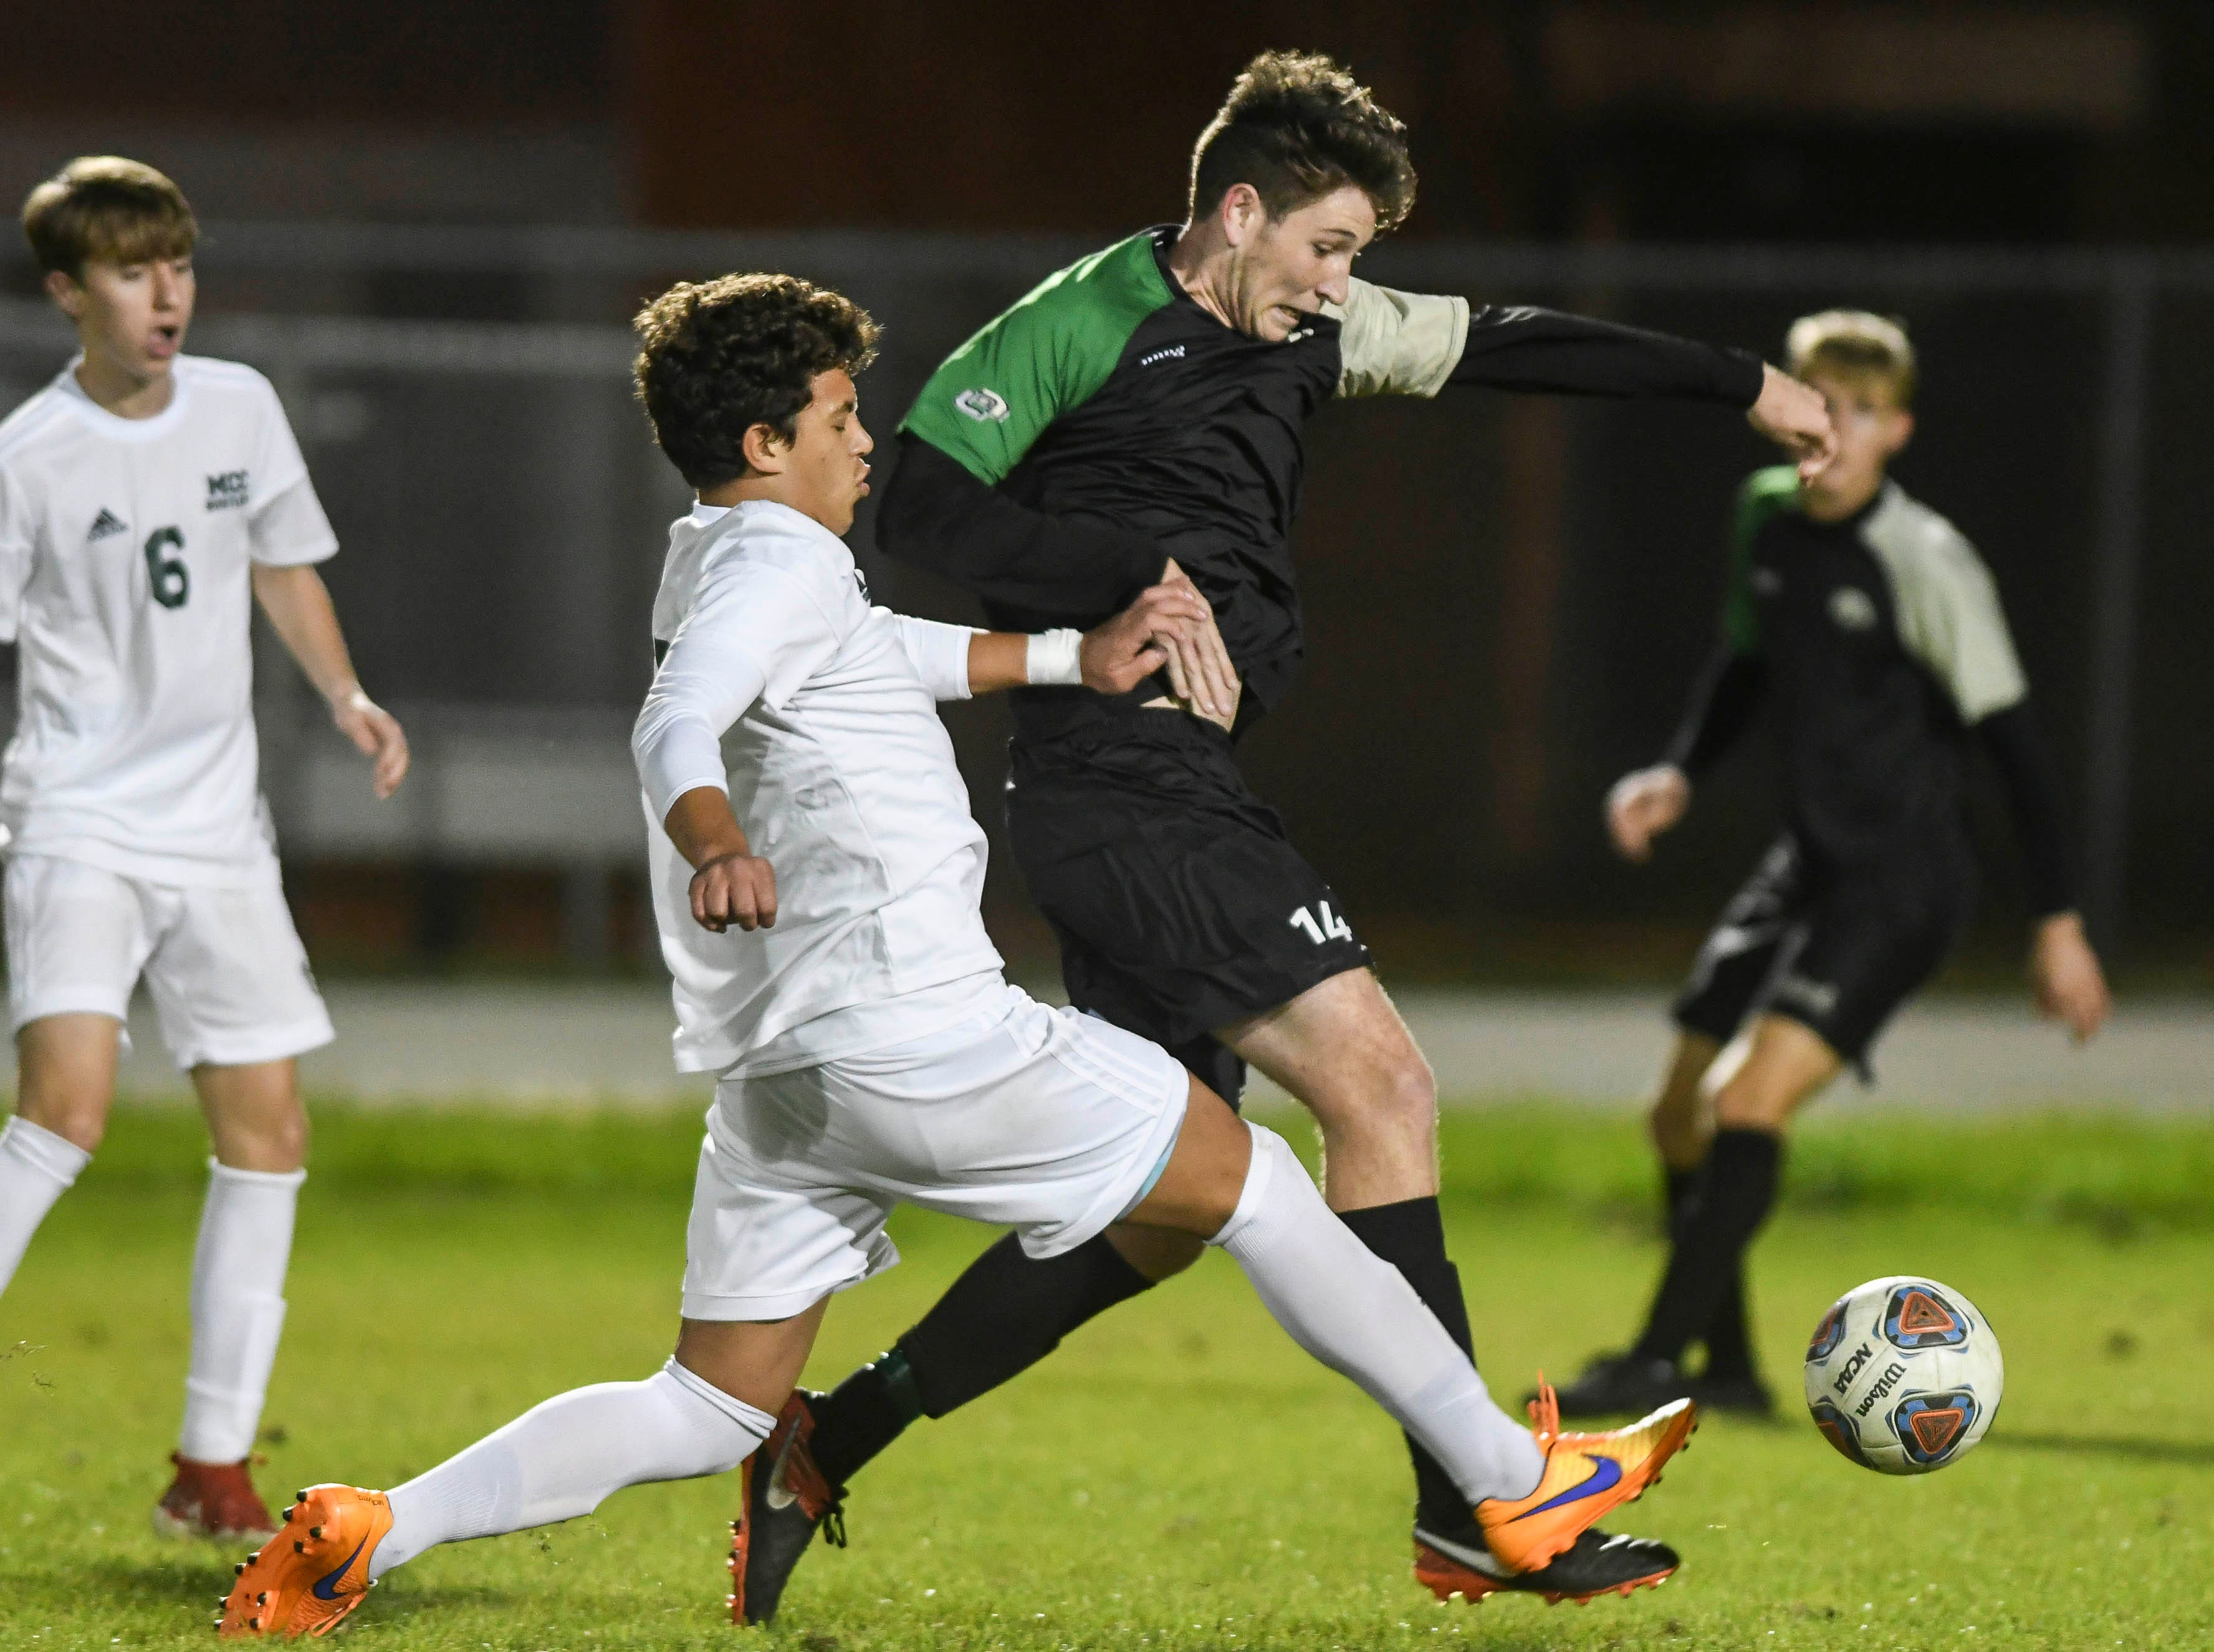 MCC's Geraldo Filho redirects the ball away from Patrick Murtha of Viera during Friday's game in Viera